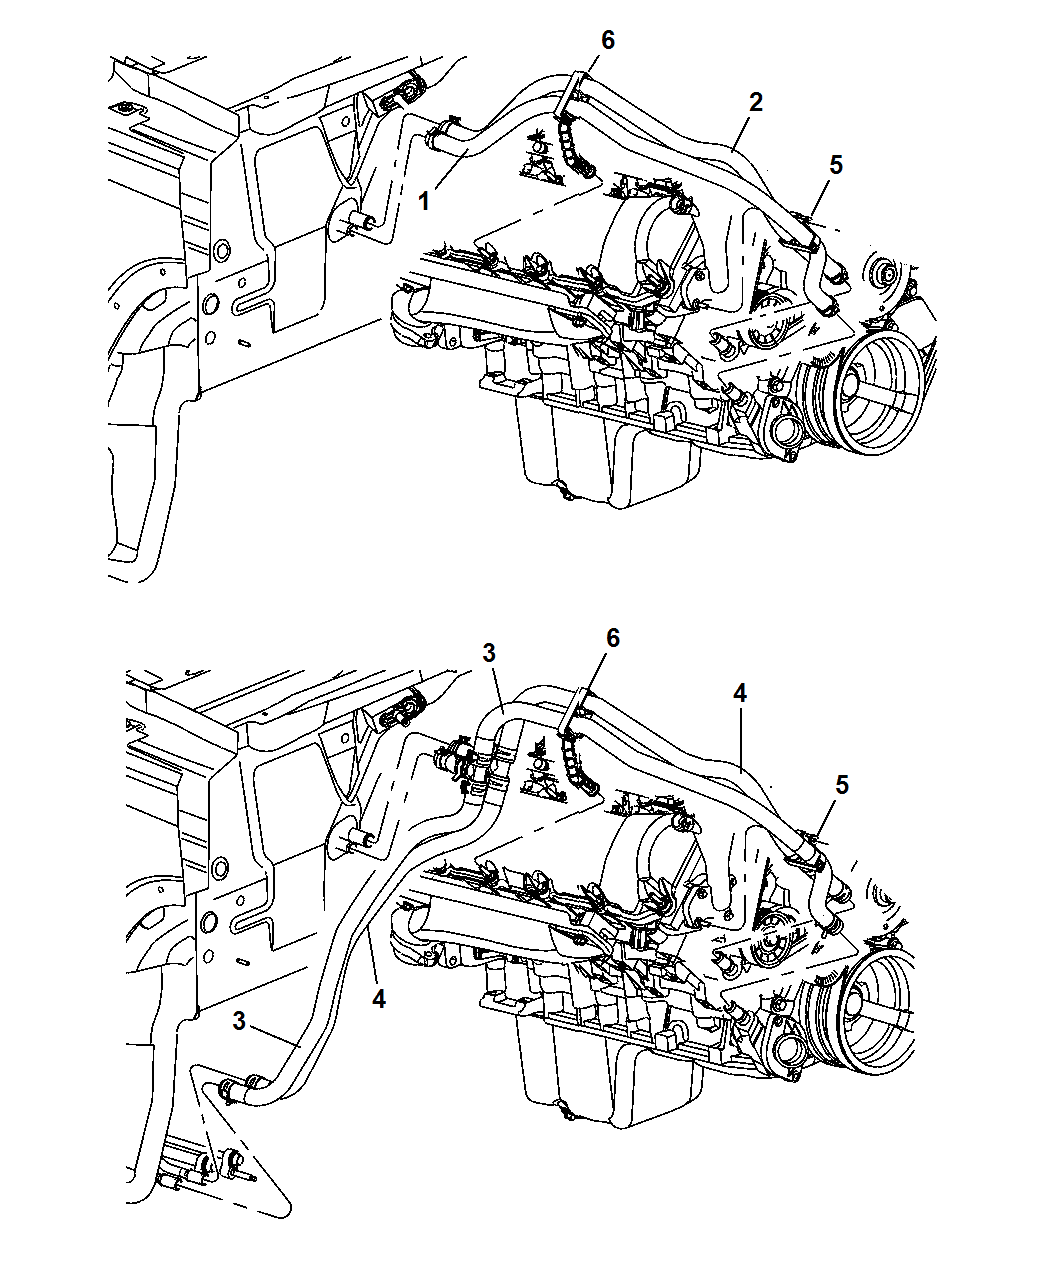 Aa 3851 Diagram Of Engine Compartment 2007 Jeep Commander Free Diagram